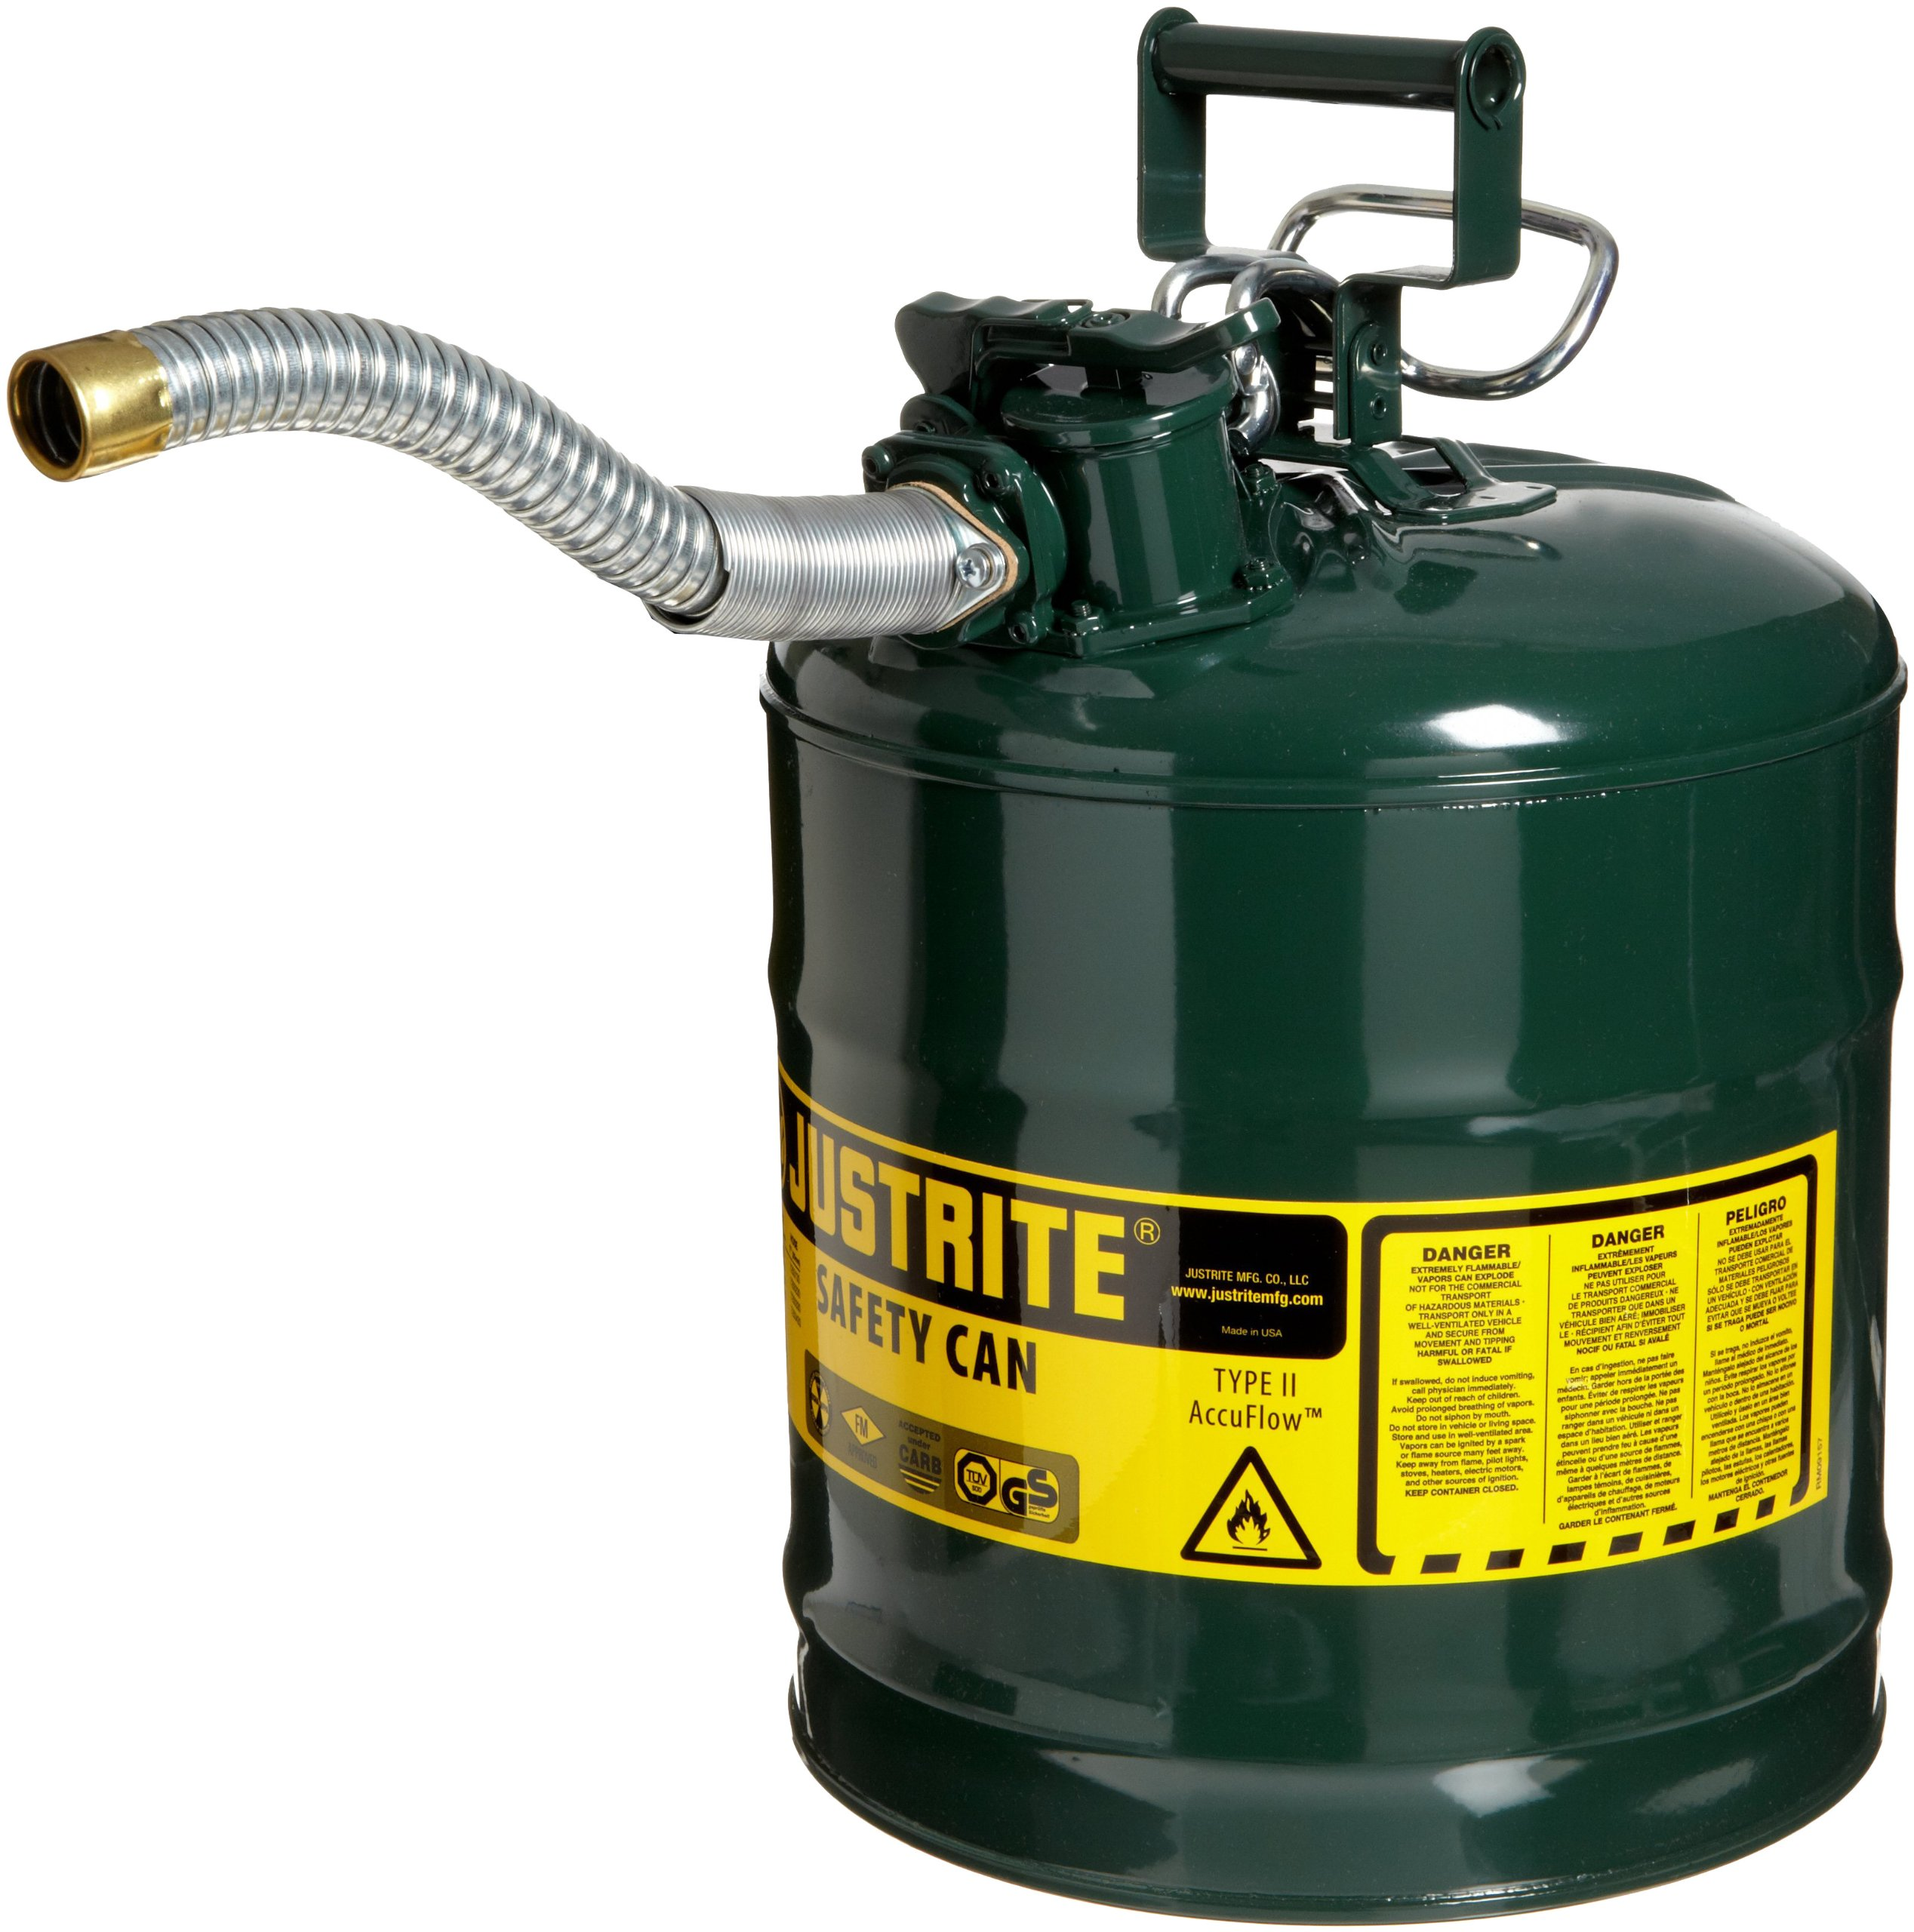 Justrite 7250430 AccuFlow 5 Gallon, 11.75'' OD x 17.50'' H Galvanized Steel Type II Green Safety Can With 1'' Flexible Spout